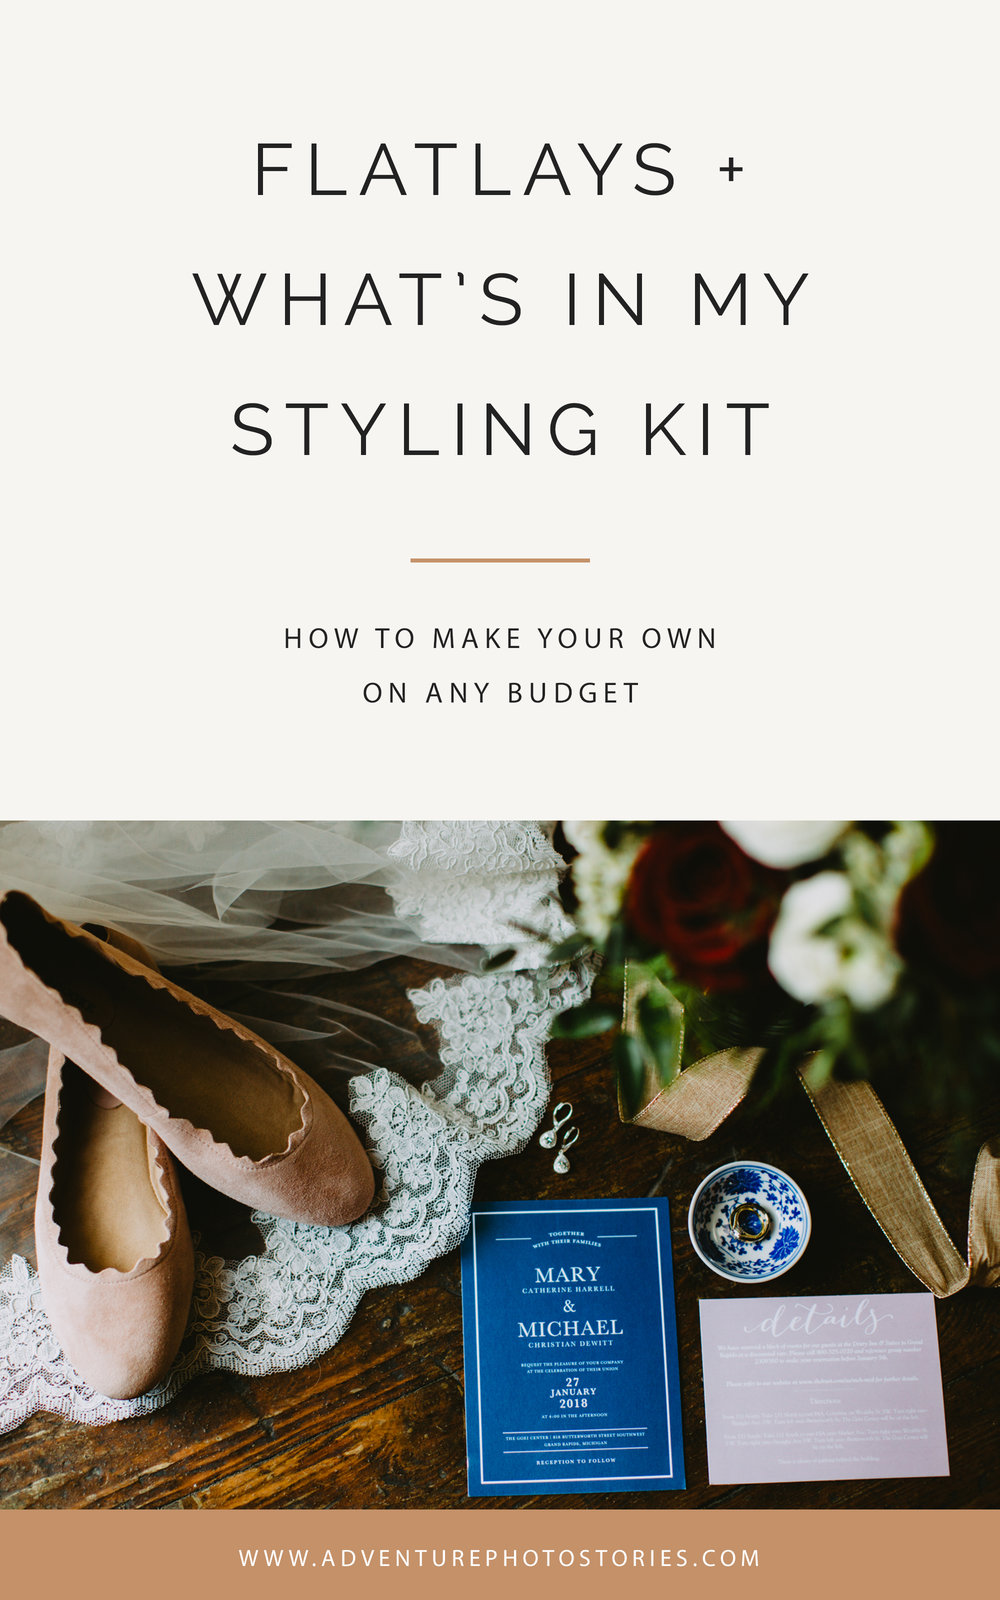 wedding photography tips / flatlays and wedding day details styling kit